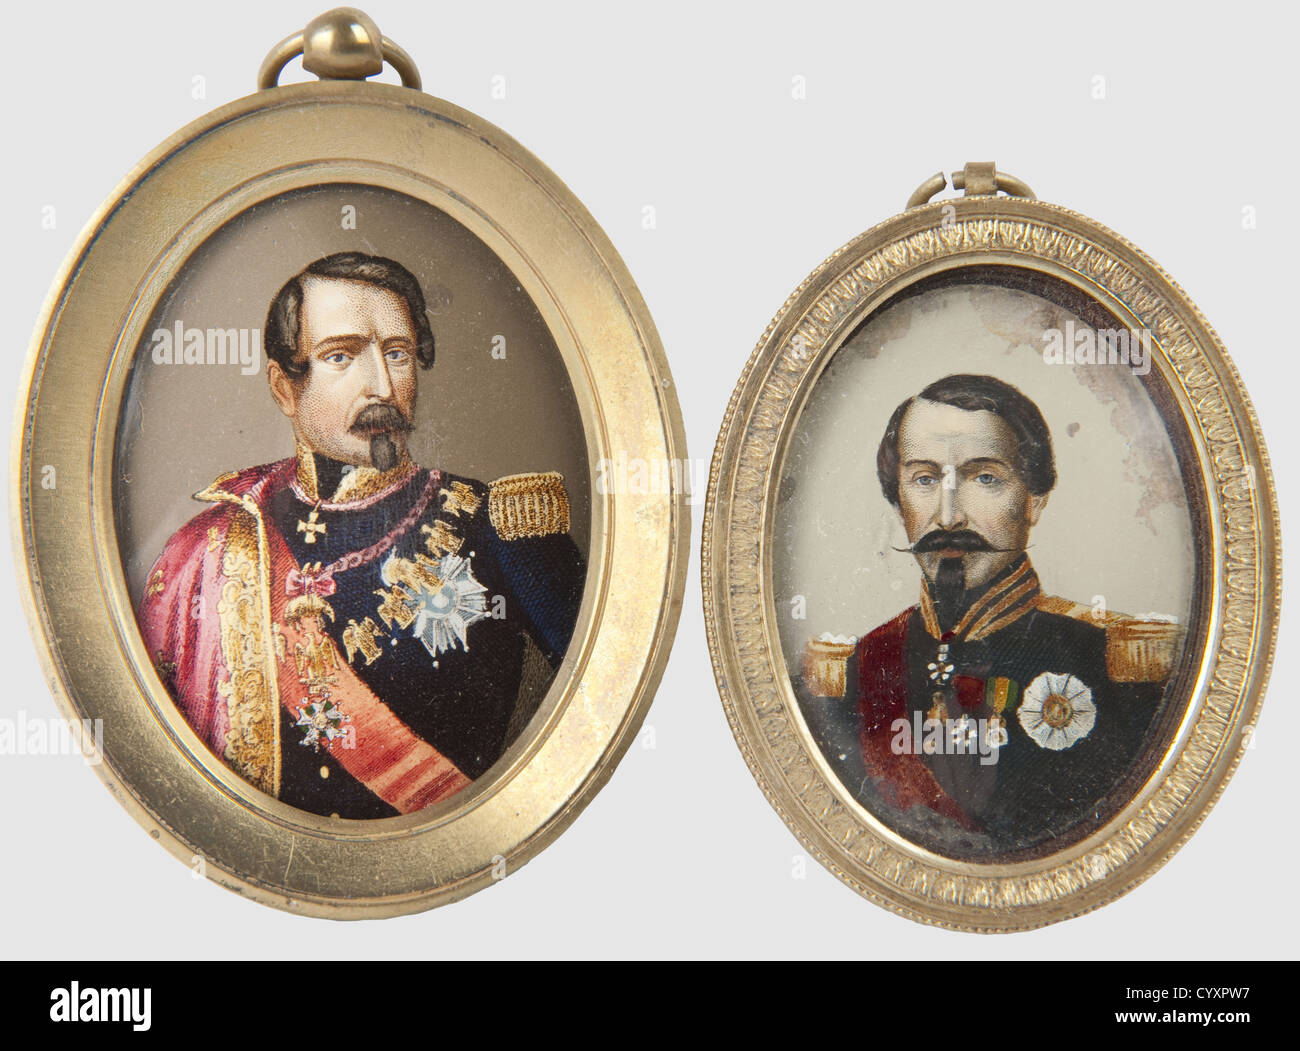 Two Miniature Portraits of Emperor Napoleon III, Paintings on copper. Chased gilded copper frame. Width 4.5 cm. - Stock Image